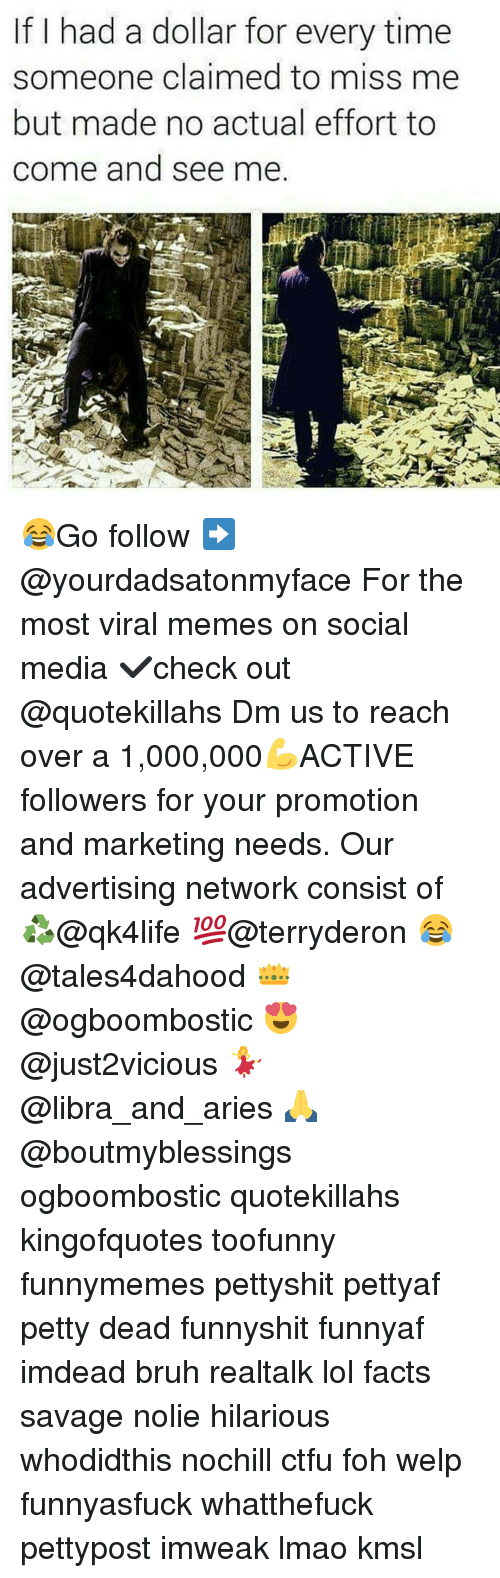 Bruh, Ctfu, and Facts: f had a dollar for every time  someone claimed to miss me  but made no actual effort to  come and see me 😂Go follow ➡@yourdadsatonmyface For the most viral memes on social media ✔check out @quotekillahs Dm us to reach over a 1,000,000💪ACTIVE followers for your promotion and marketing needs. Our advertising network consist of ♻@qk4life 💯@terryderon 😂@tales4dahood 👑@ogboombostic 😍@just2vicious 💃@libra_and_aries 🙏@boutmyblessings ogboombostic quotekillahs kingofquotes toofunny funnymemes pettyshit pettyaf petty dead funnyshit funnyaf imdead bruh realtalk lol facts savage nolie hilarious whodidthis nochill ctfu foh welp funnyasfuck whatthefuck pettypost imweak lmao kmsl